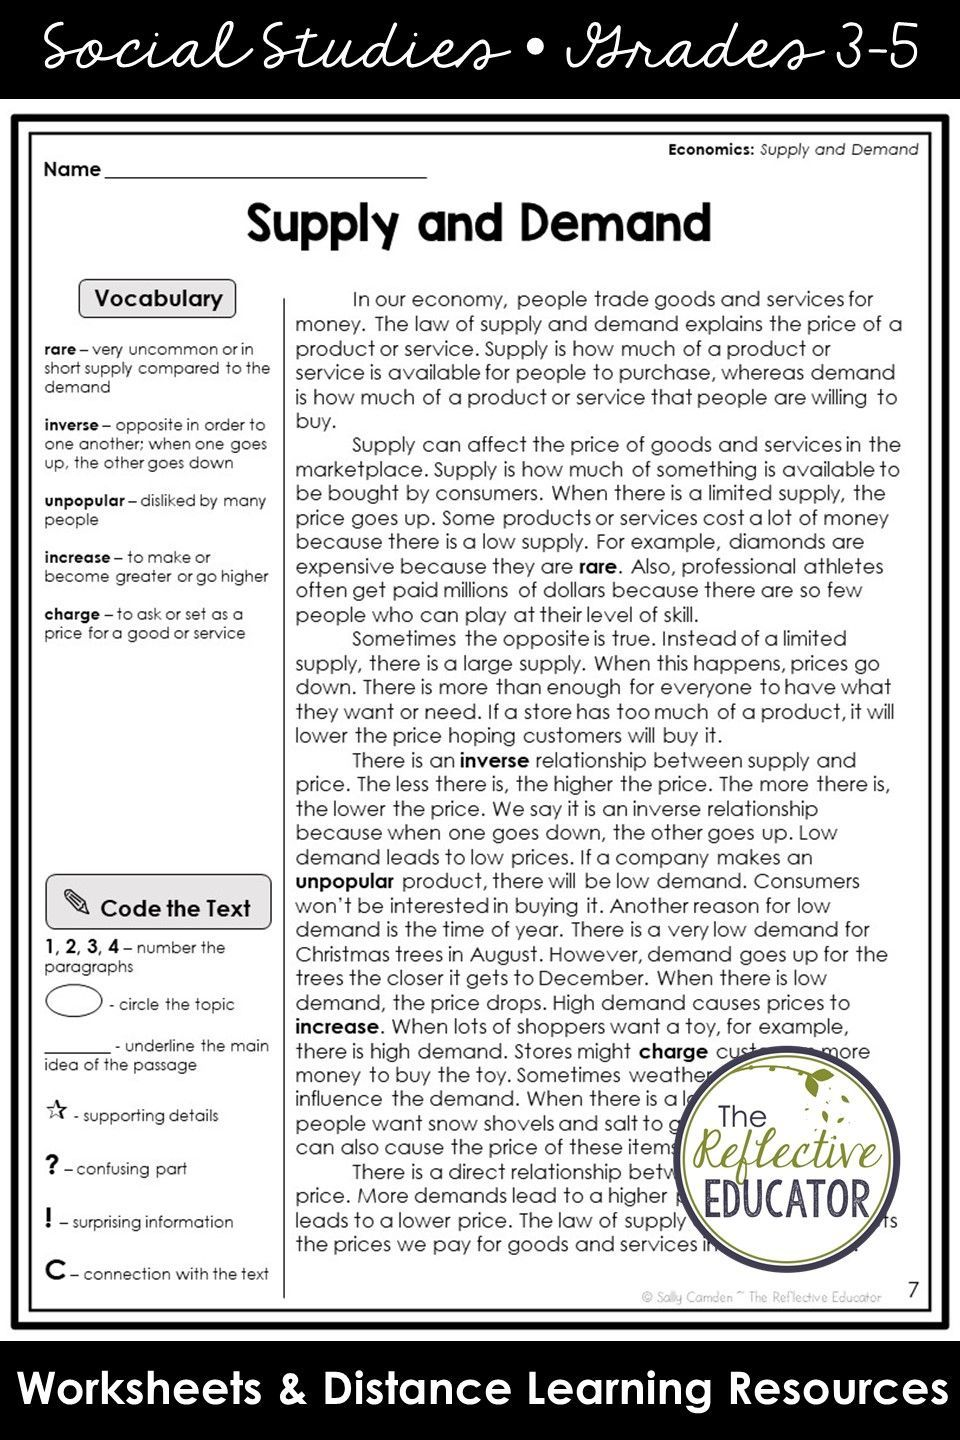 hight resolution of https://cute766.info/supply-and-demand-for-google-classroom-distance-learning-in-2020-social-studies-worksheets/